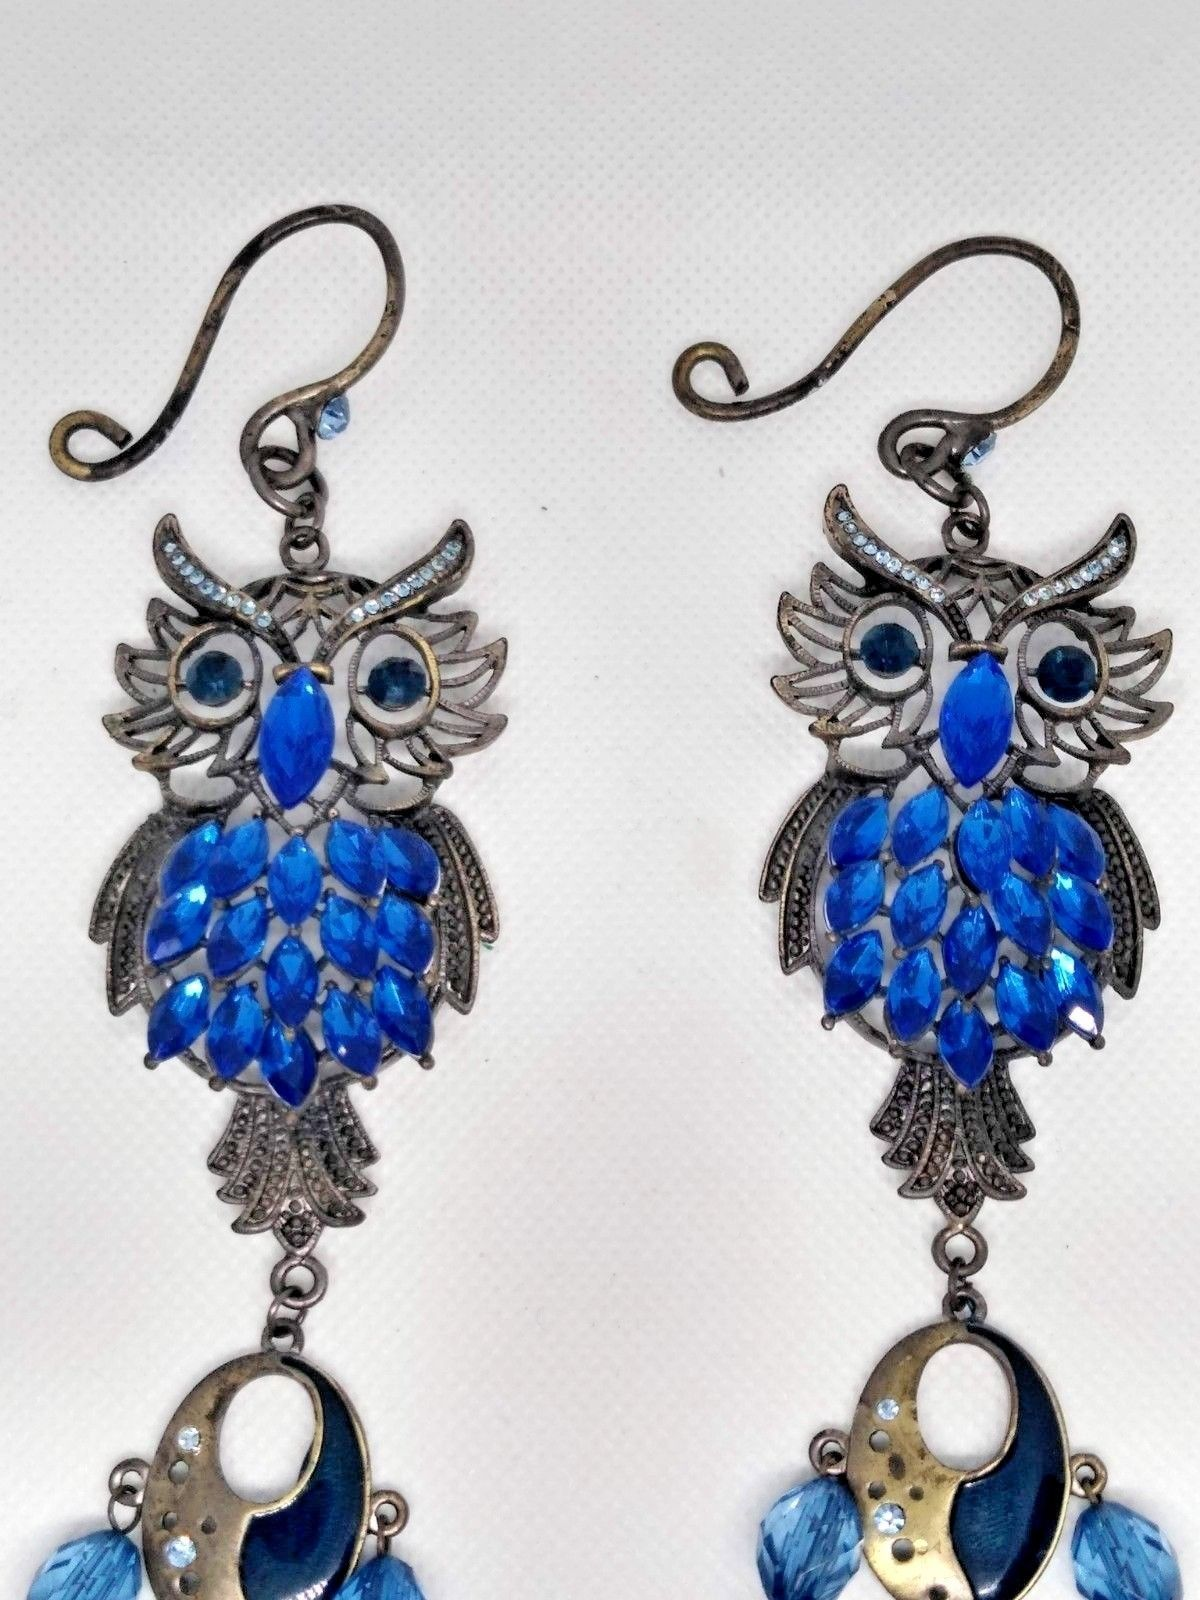 SET OF 2 HANGING OWL ACCENTS WITH FAUX BLUE STONES